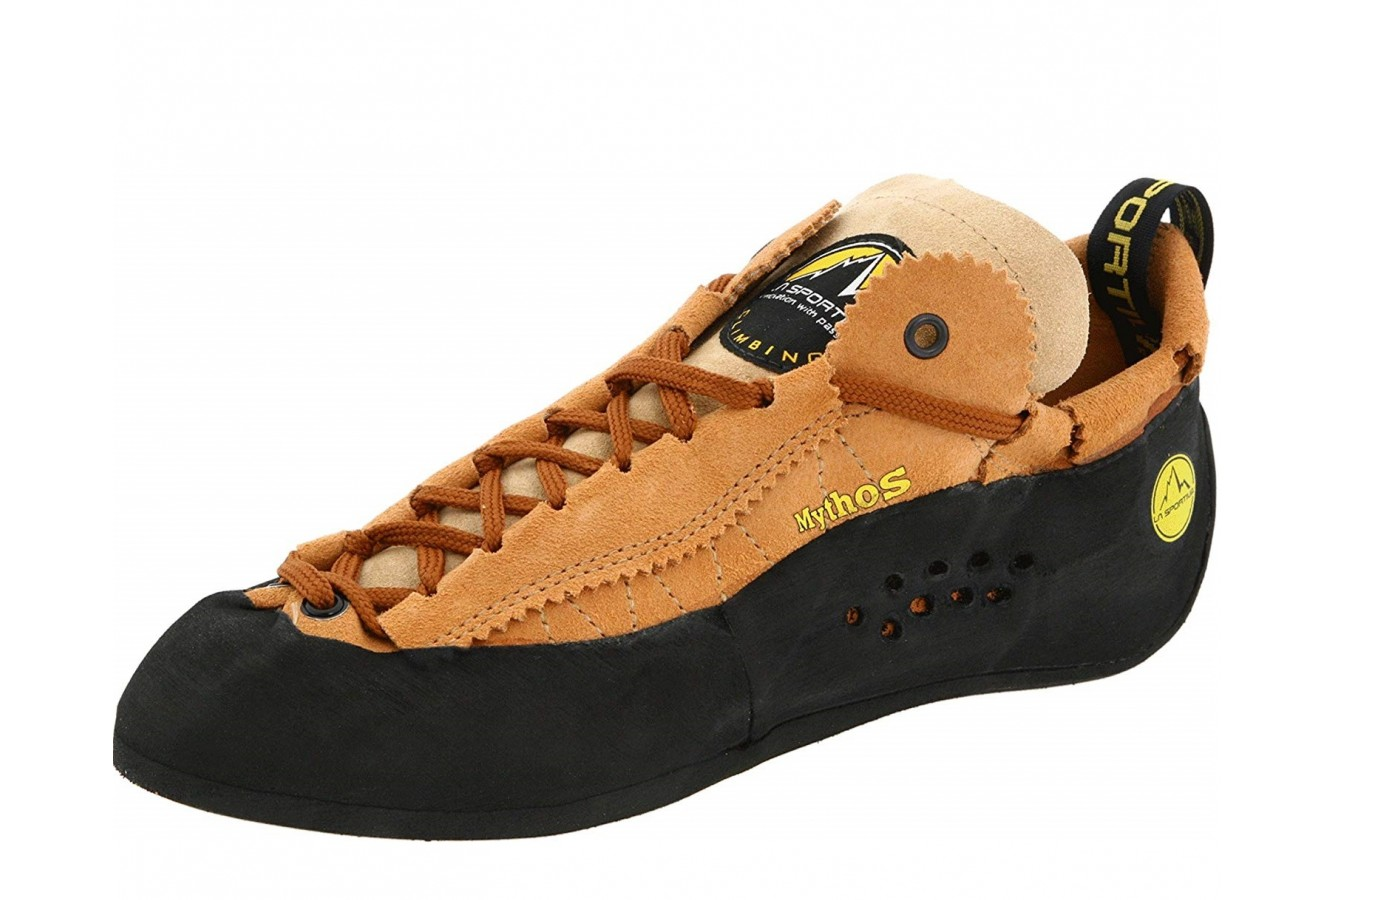 The La Sportiva Mythos offers a patent lacing system for support and stability.